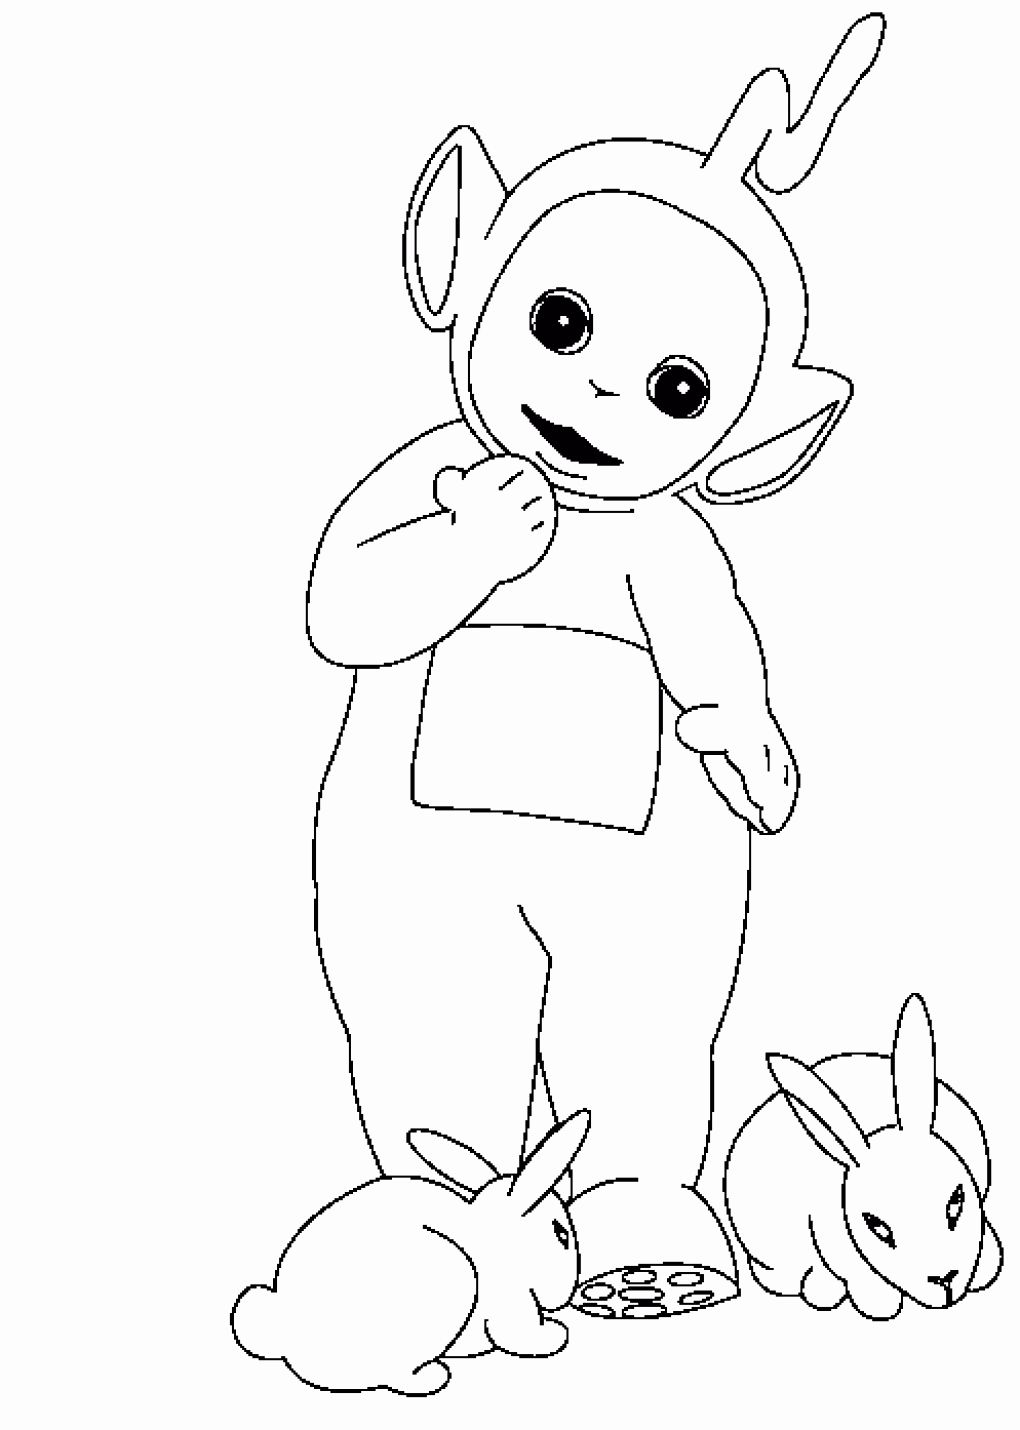 Kids Online Coloring Page Unique Free Printable Teletubbies Coloring Pages For Kids In 2020 Kids Printable Coloring Pages Online Coloring Pages Cartoon Coloring Pages